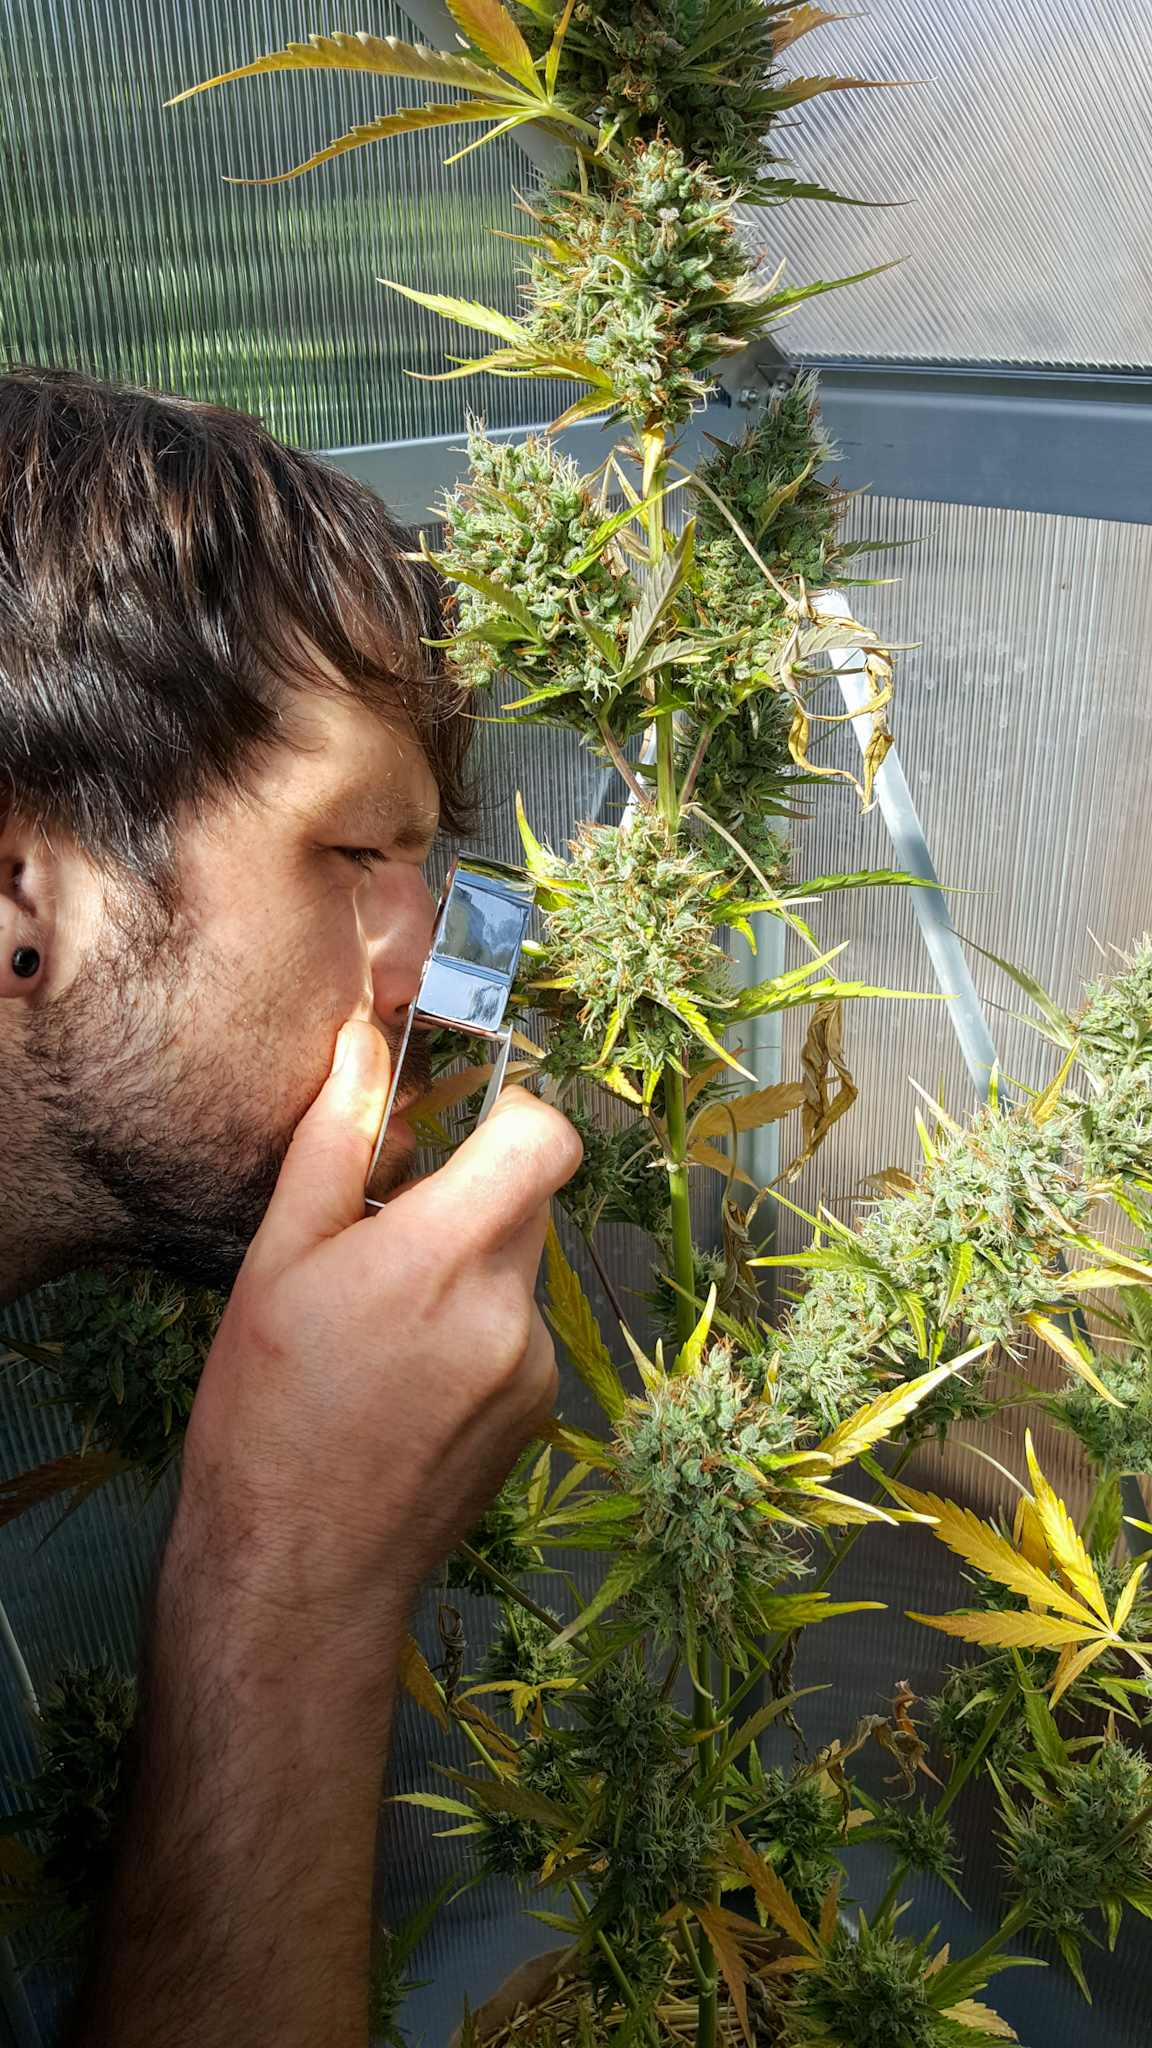 A man is looking at a mature auto flowering cannabis plant through a jewelers loupe. The plant has swollen buds and yellowing leaves, some of which are starting to fall off the plant.